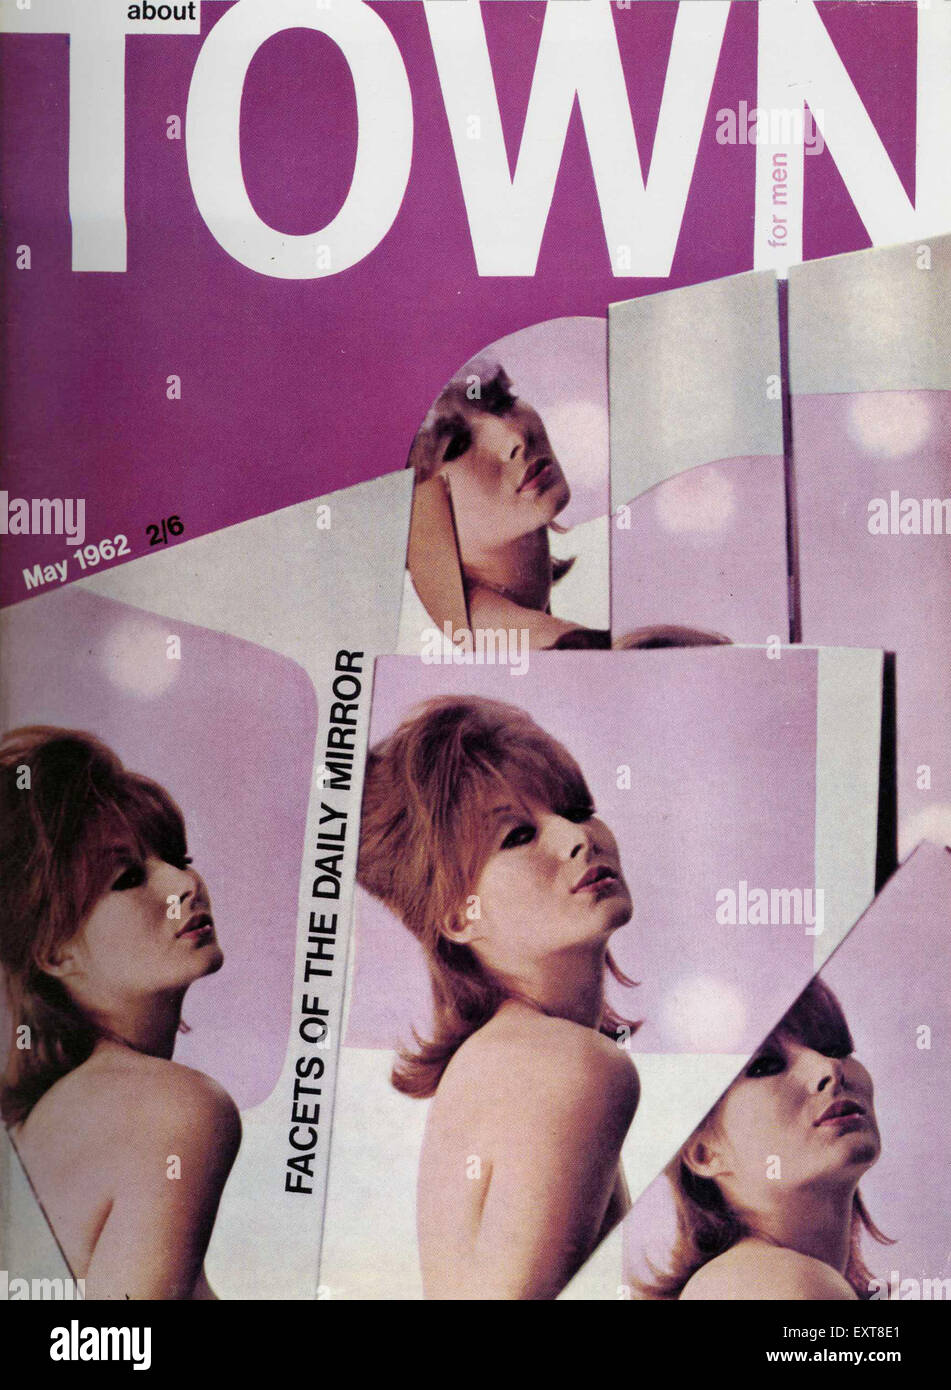 1960s UK About Town Magazine Cover - Stock Image